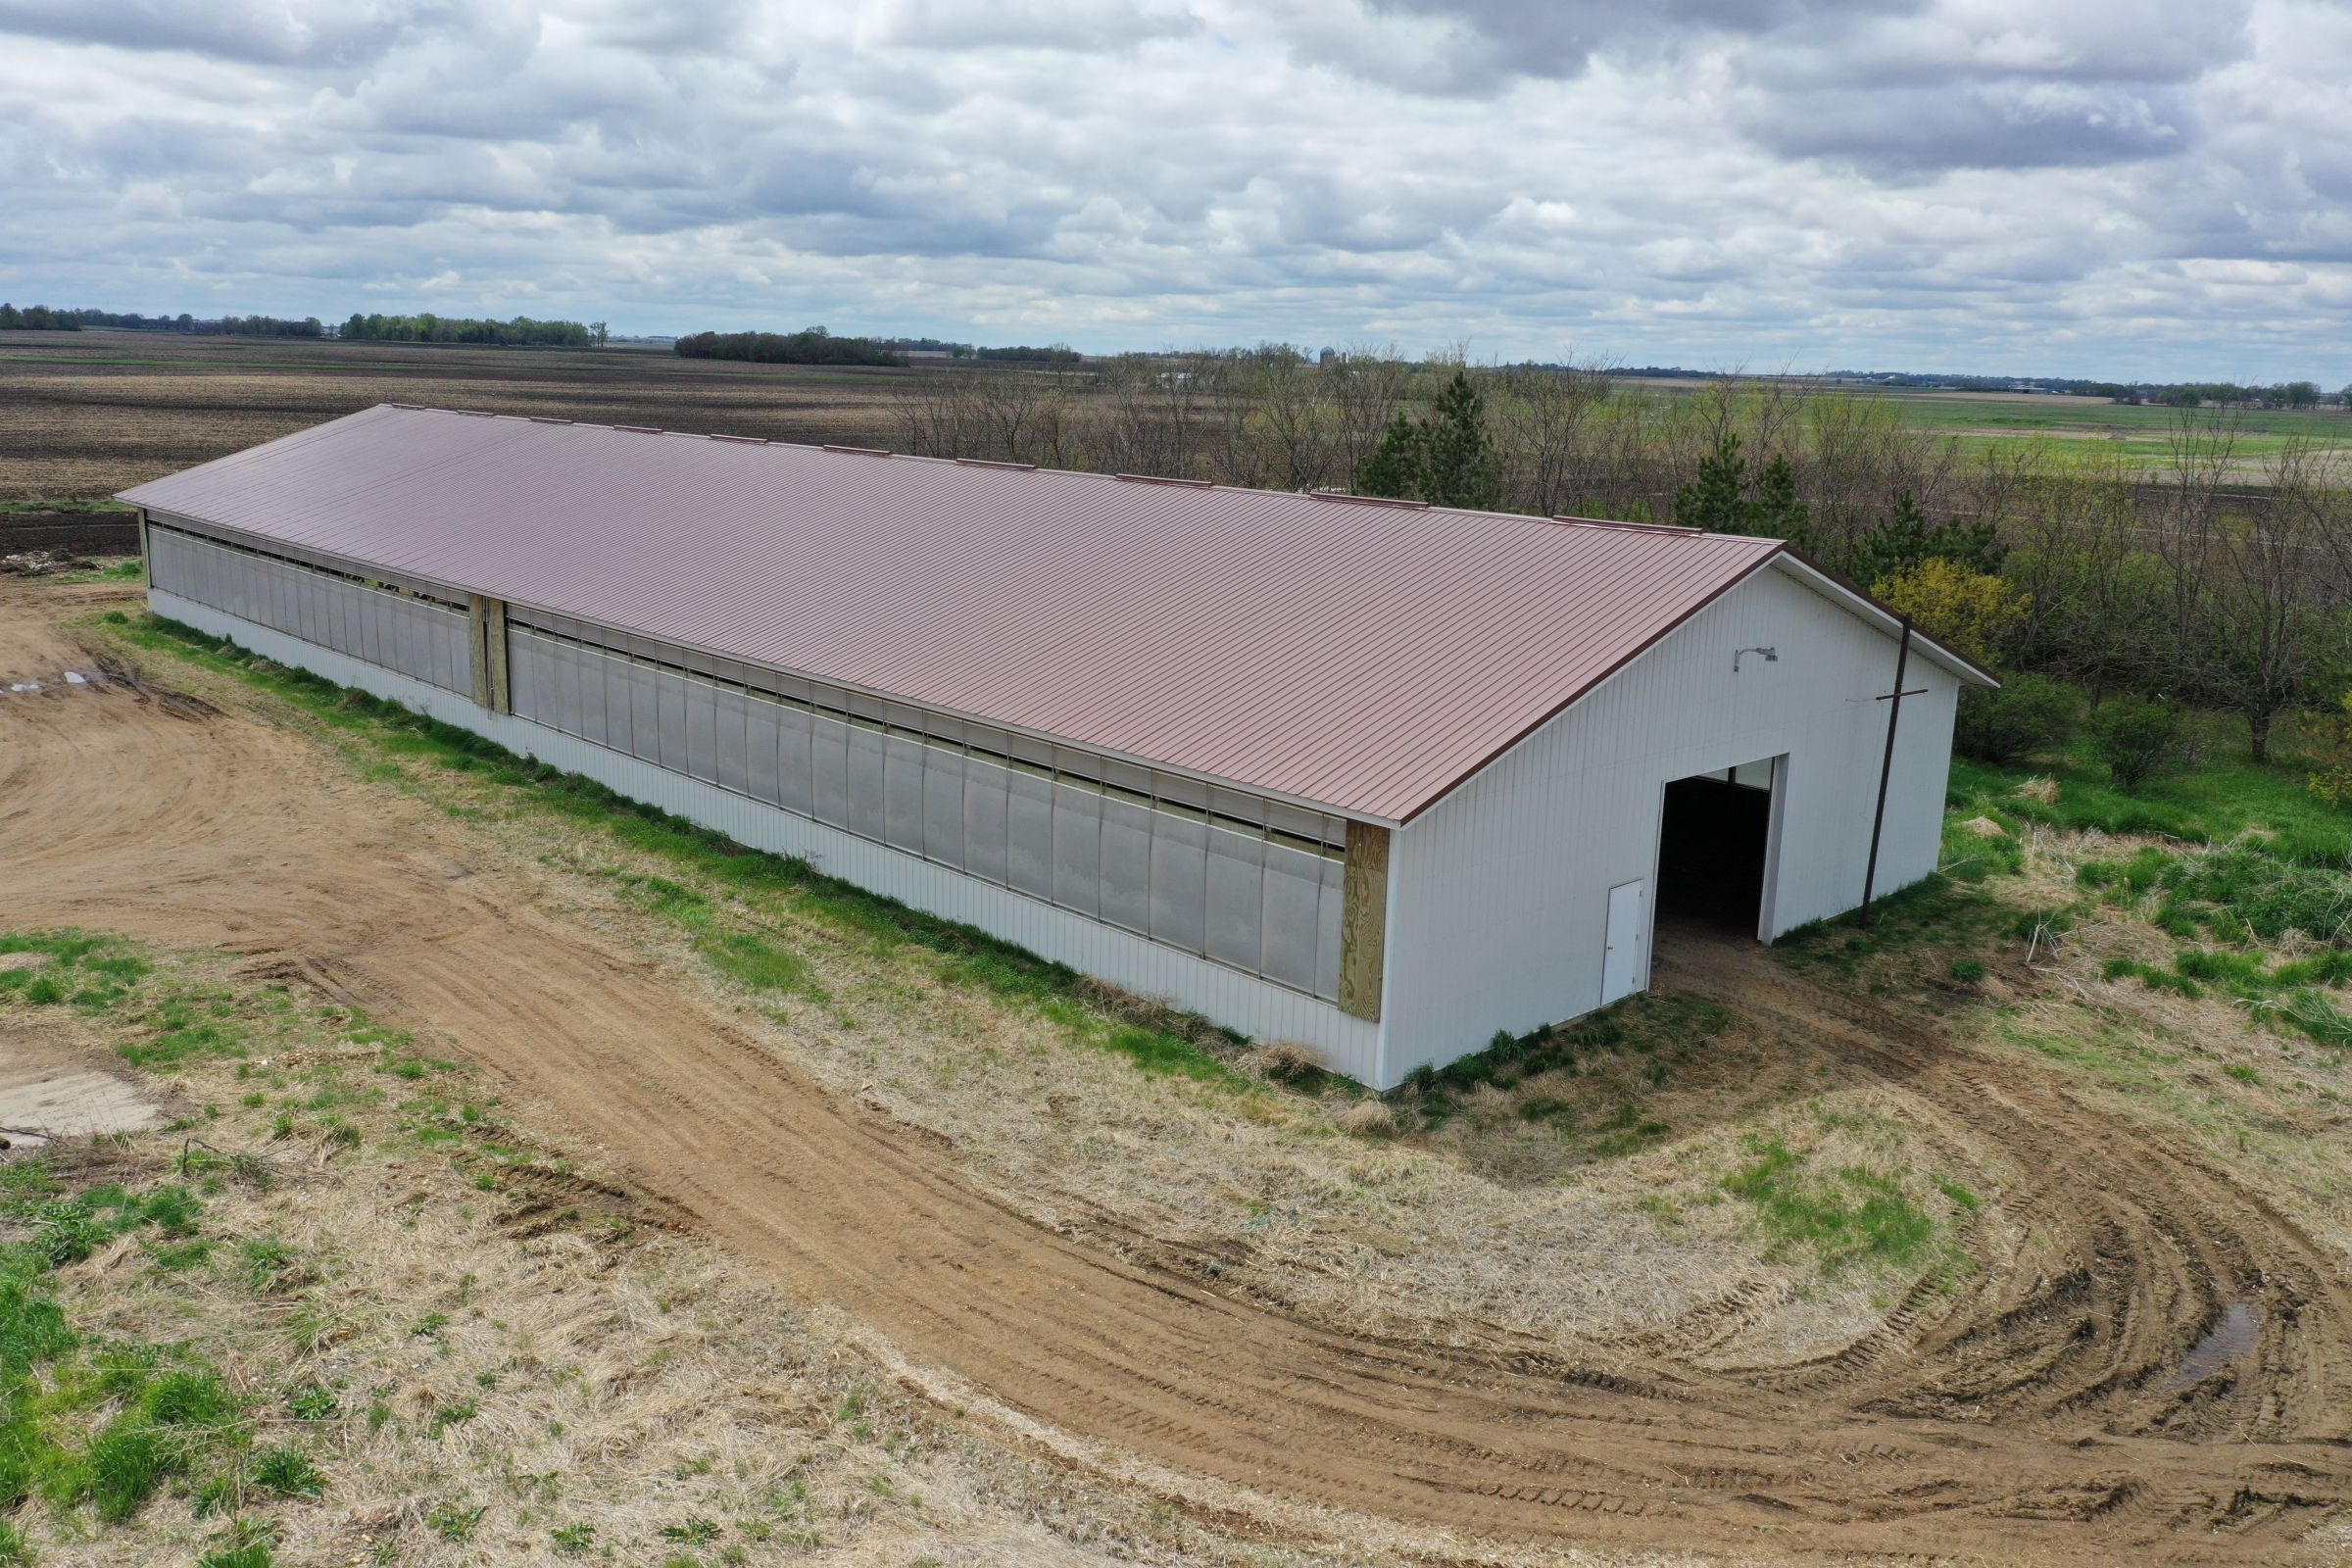 residential-auctions-land-turner-county-south-dakota-12-acres-listing-number-14971-3-2020-06-02-160628.JPG